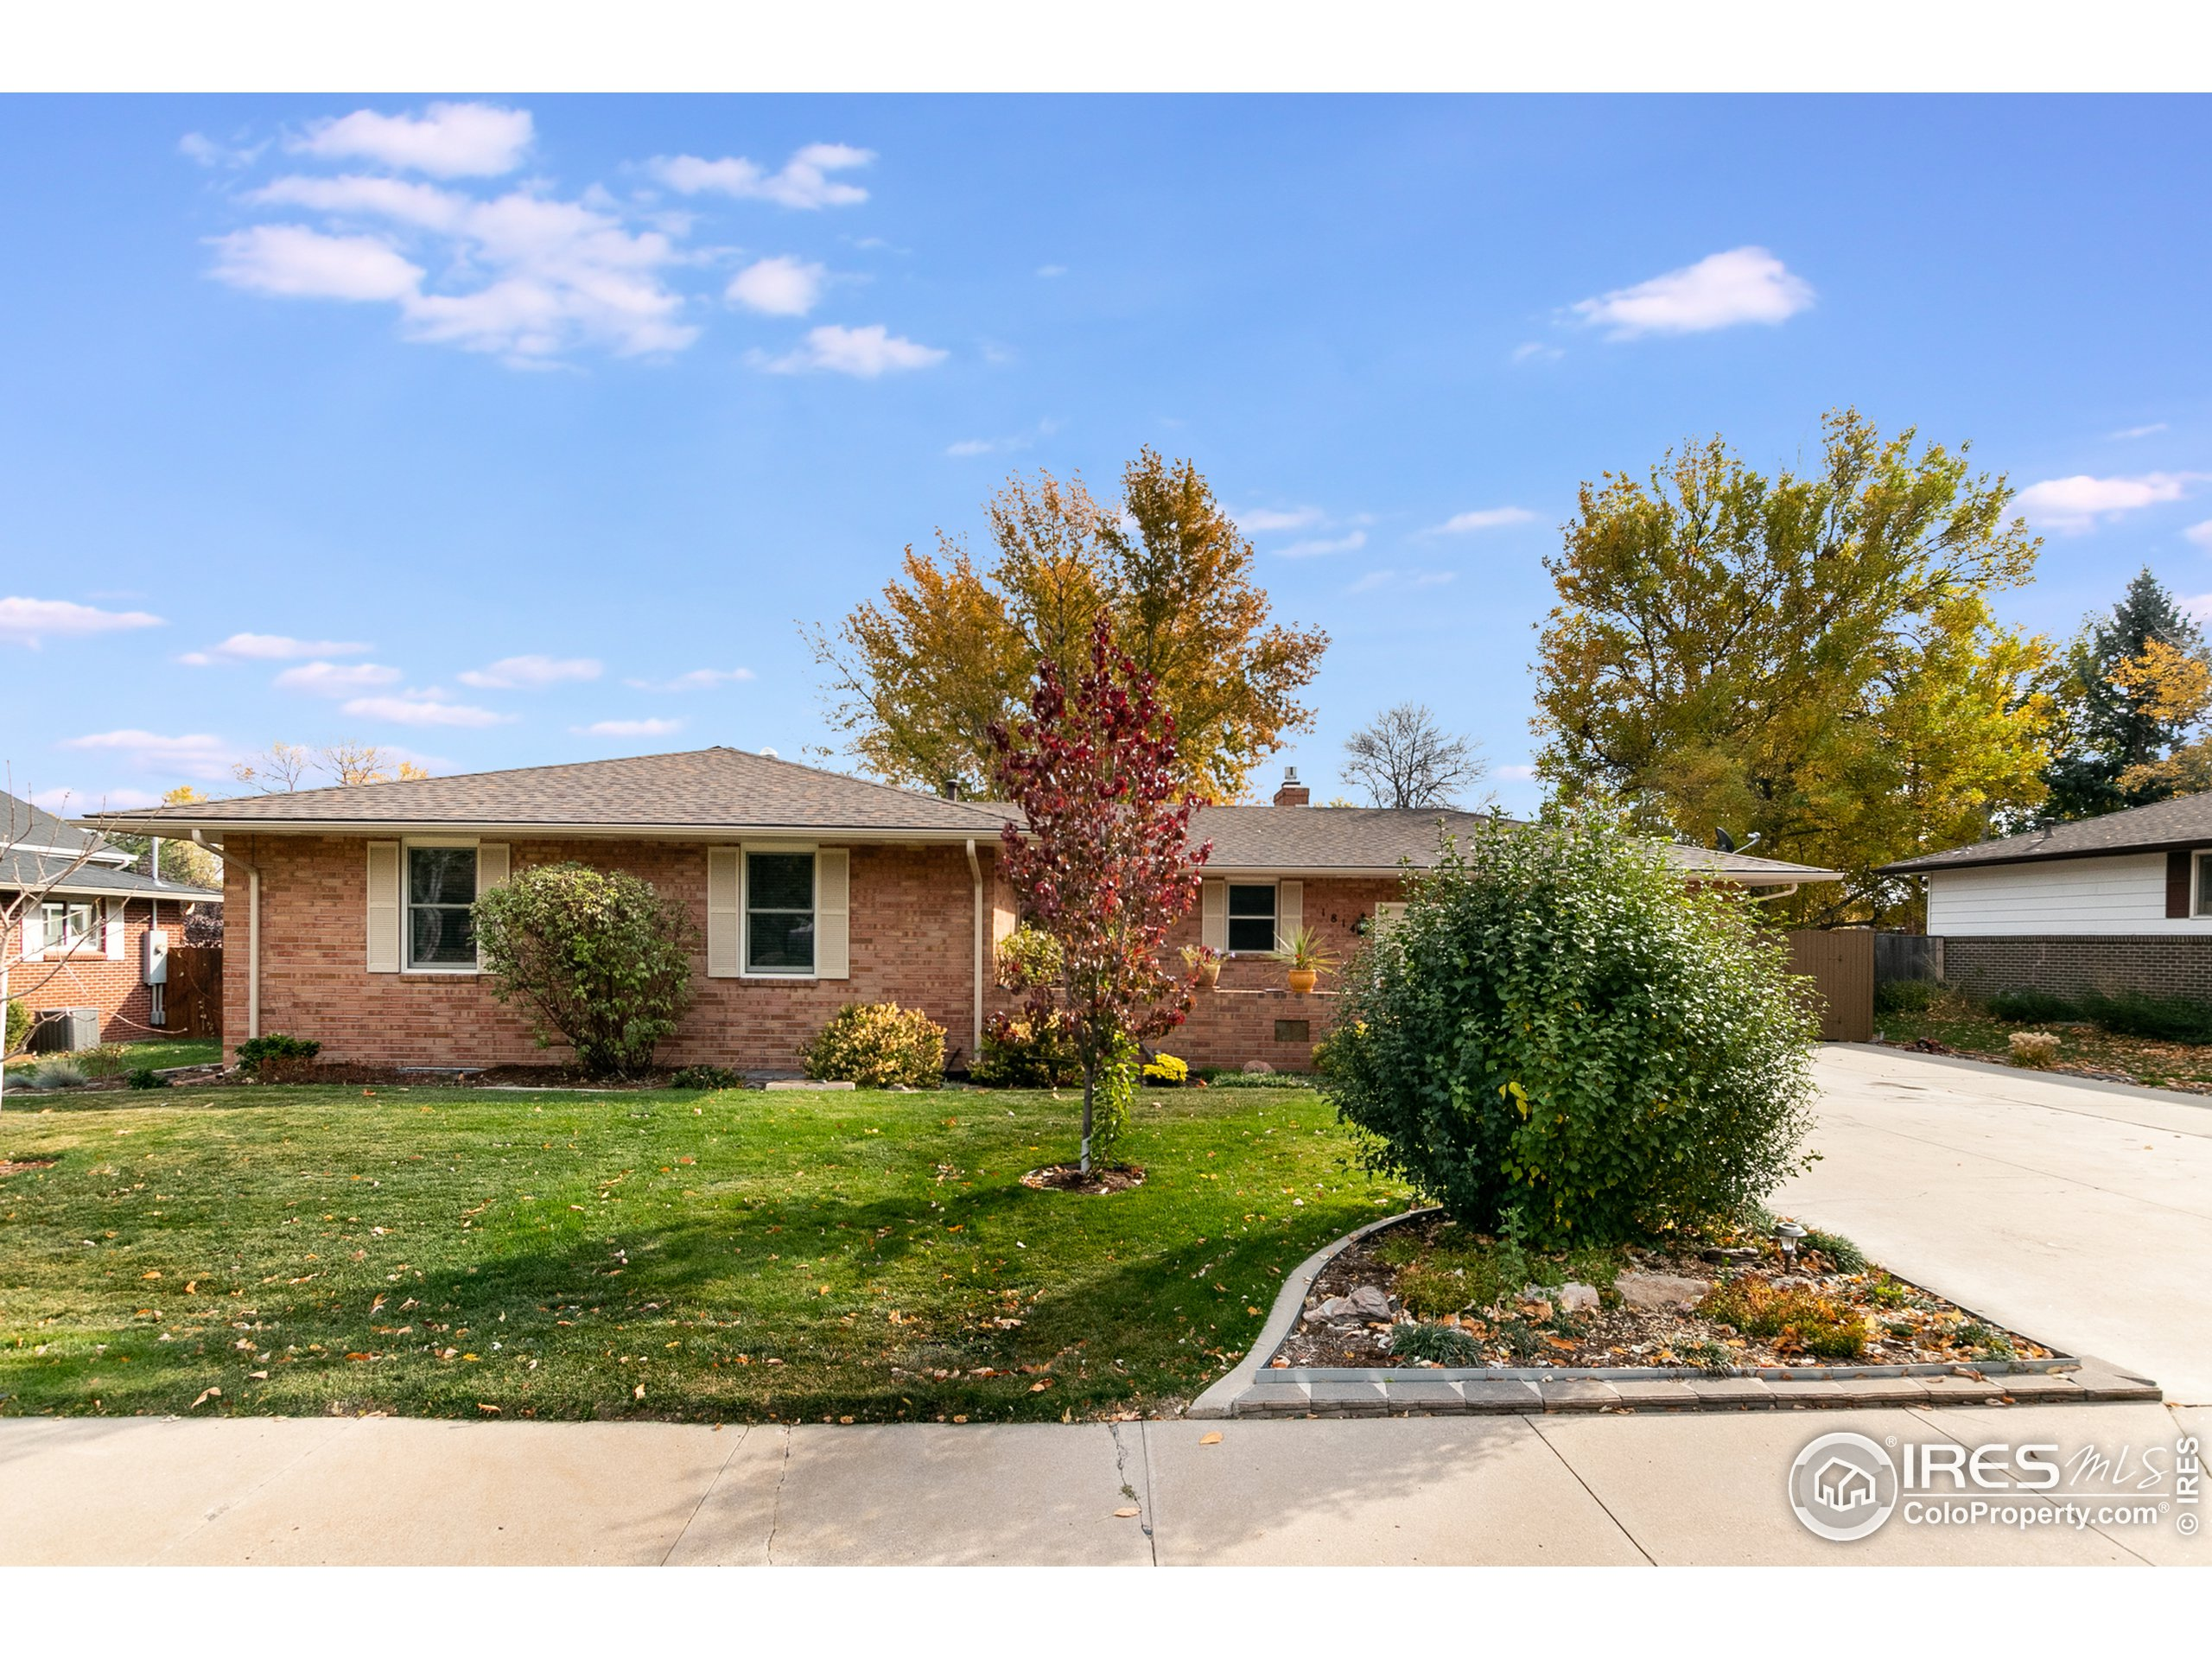 Beautifully maintained ranch home in the heart of Loveland. New Furnace in 2020. Roof 2 yrs Old. Kitchen is open to the living room with Gas Fireplace & Dining Room. Walk out to the sunroom, sip your coffee & enjoy the 2 patio's in the landscaped back yard. The oversized Owners Room has seating area, double sinks & 2 large closets. Basement is finished with a bedroom & the family room is perfect for entertaining. Oversized Garage & large lot.